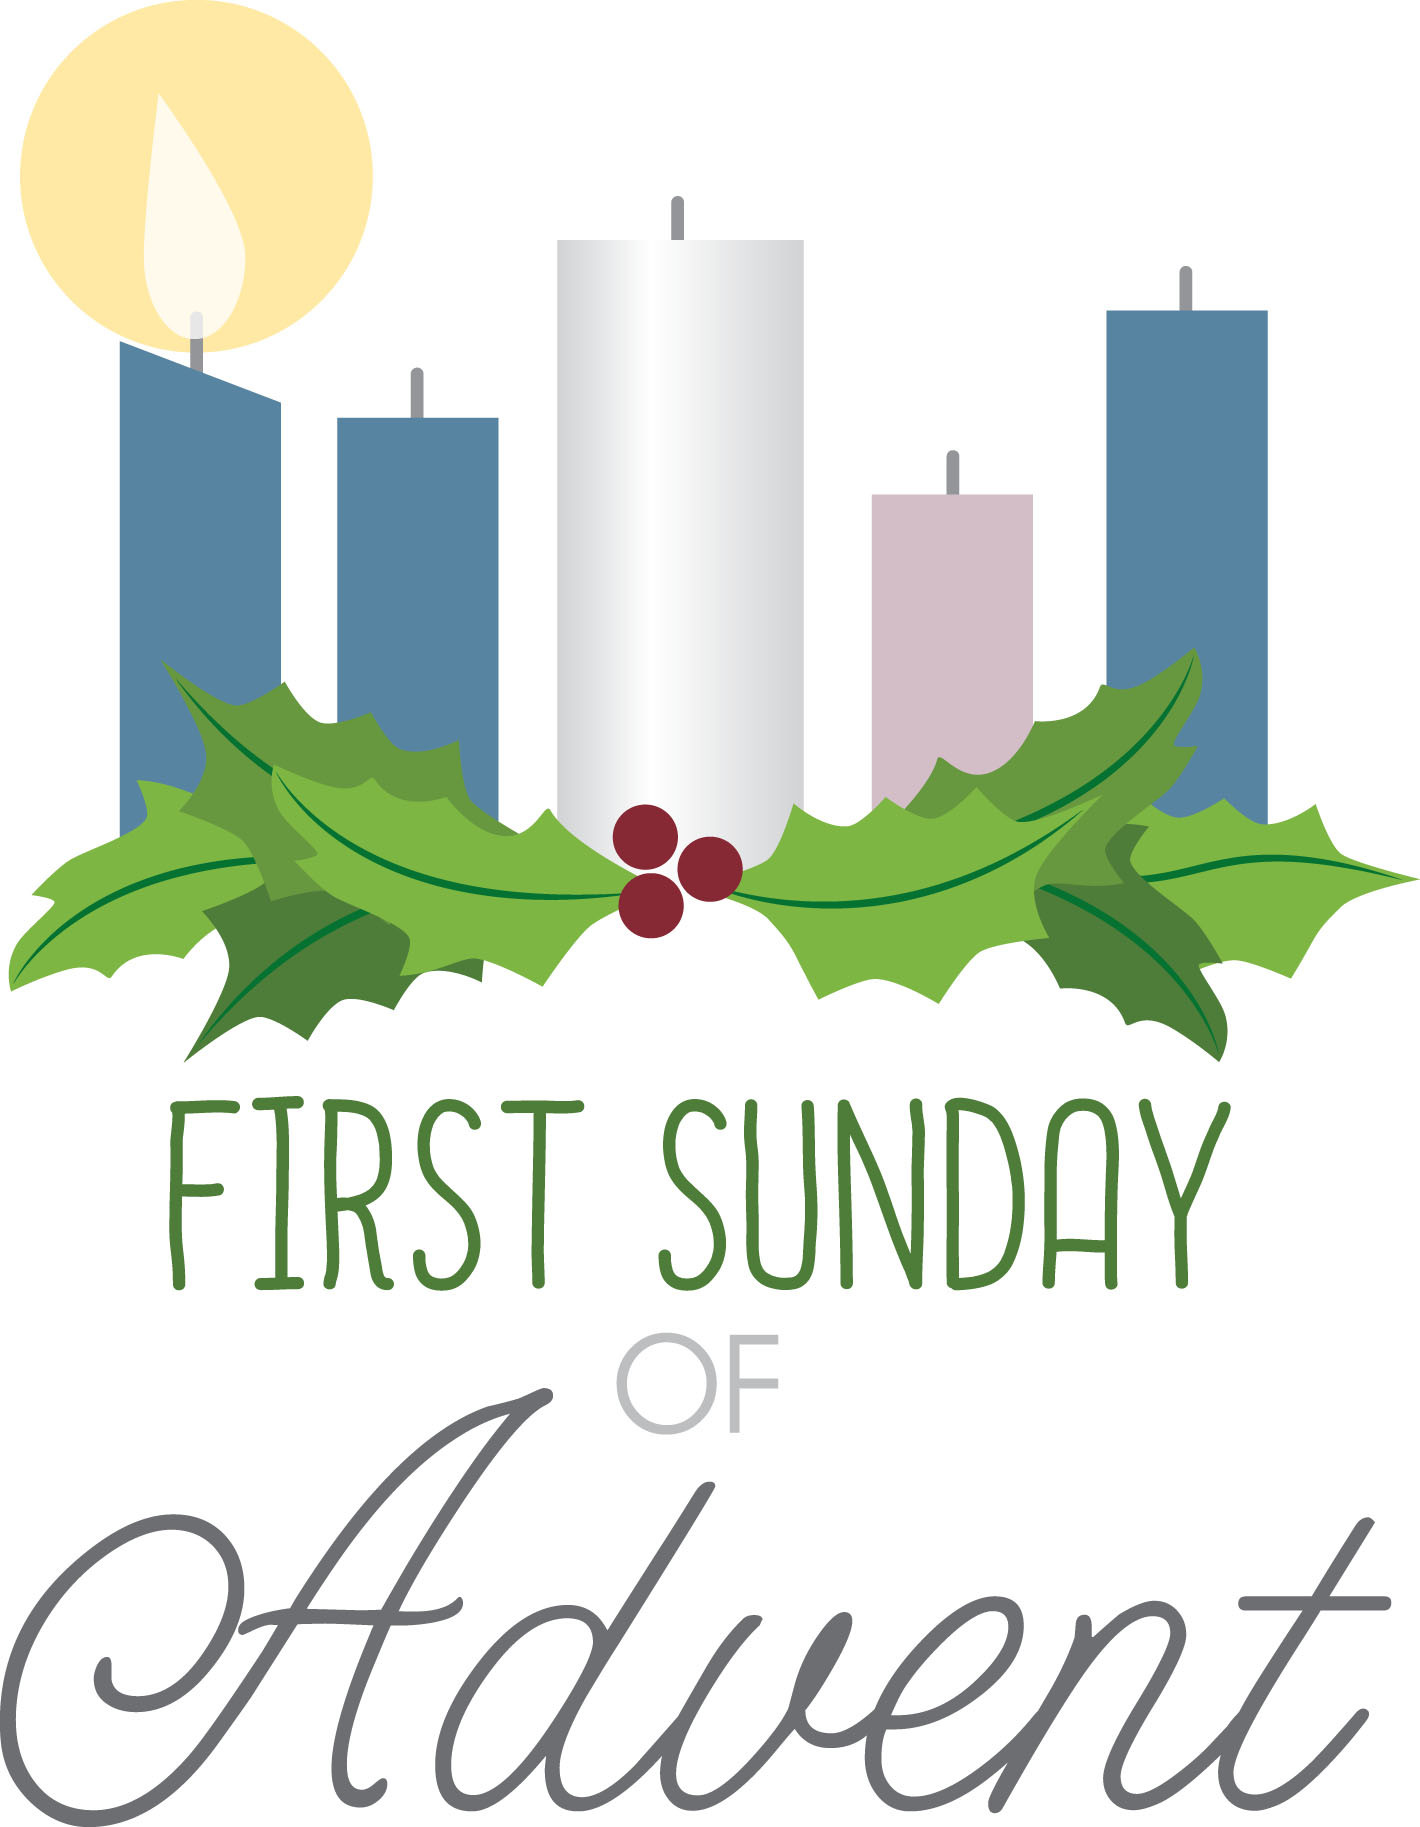 graphic free stock First sunday of clipart. Transparent png free download